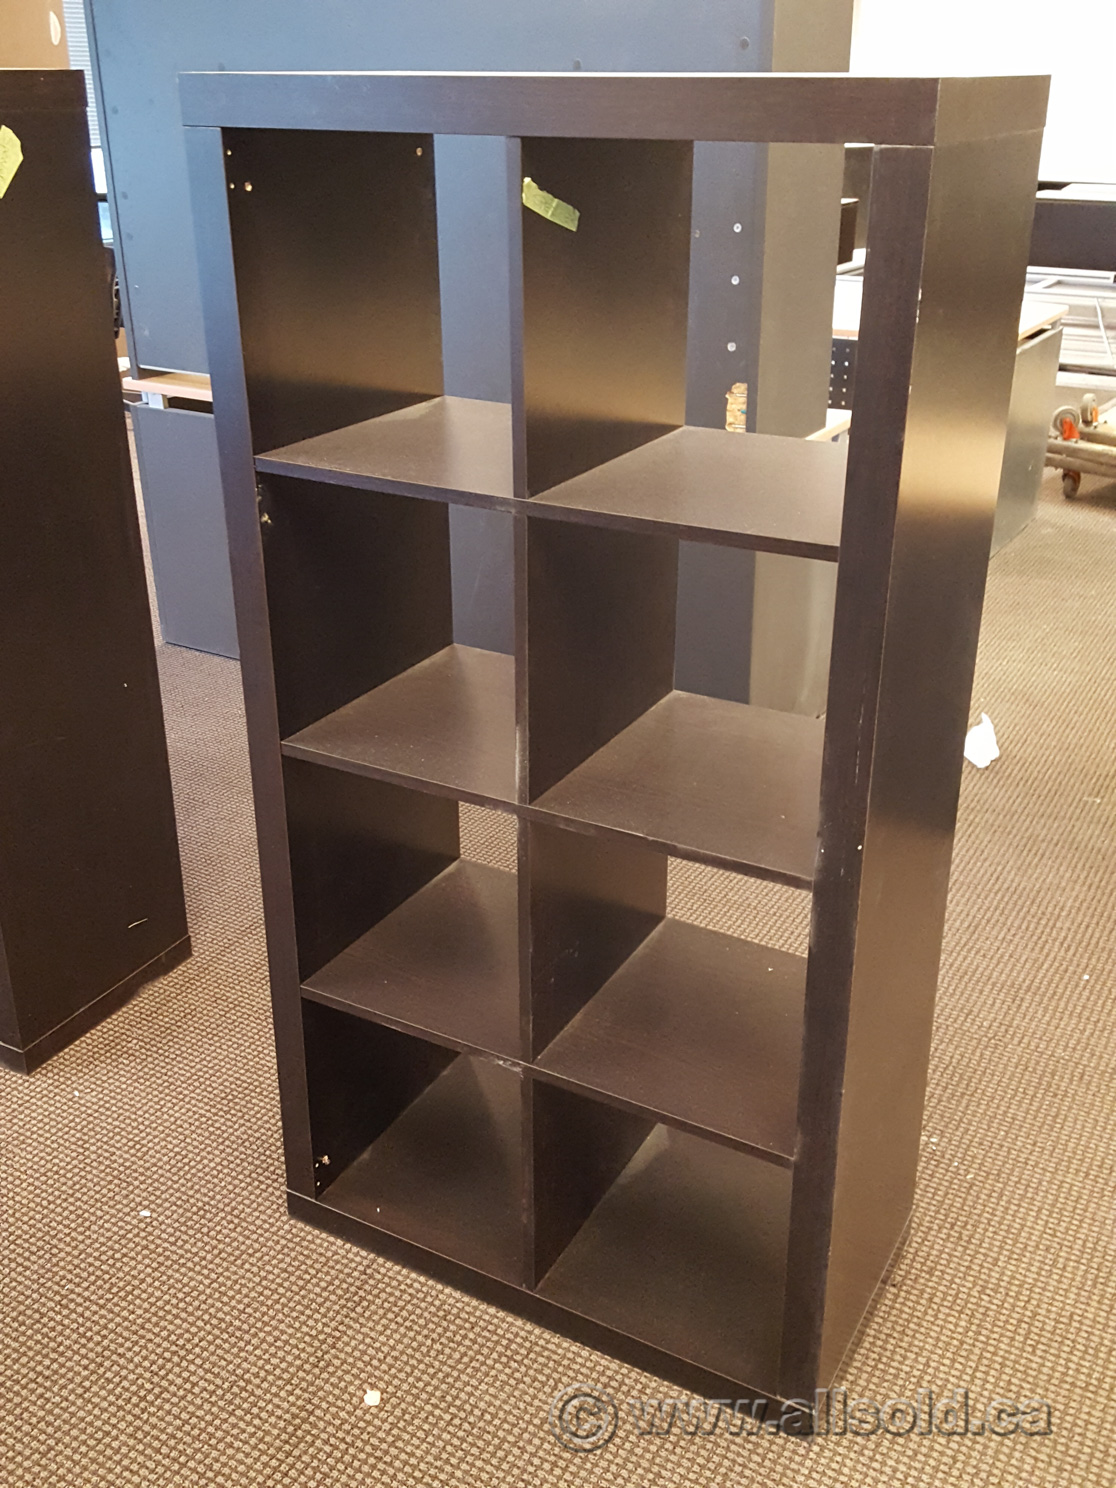 ikea kallax black 8 compartment bookcase shelf buy sell used office furniture. Black Bedroom Furniture Sets. Home Design Ideas